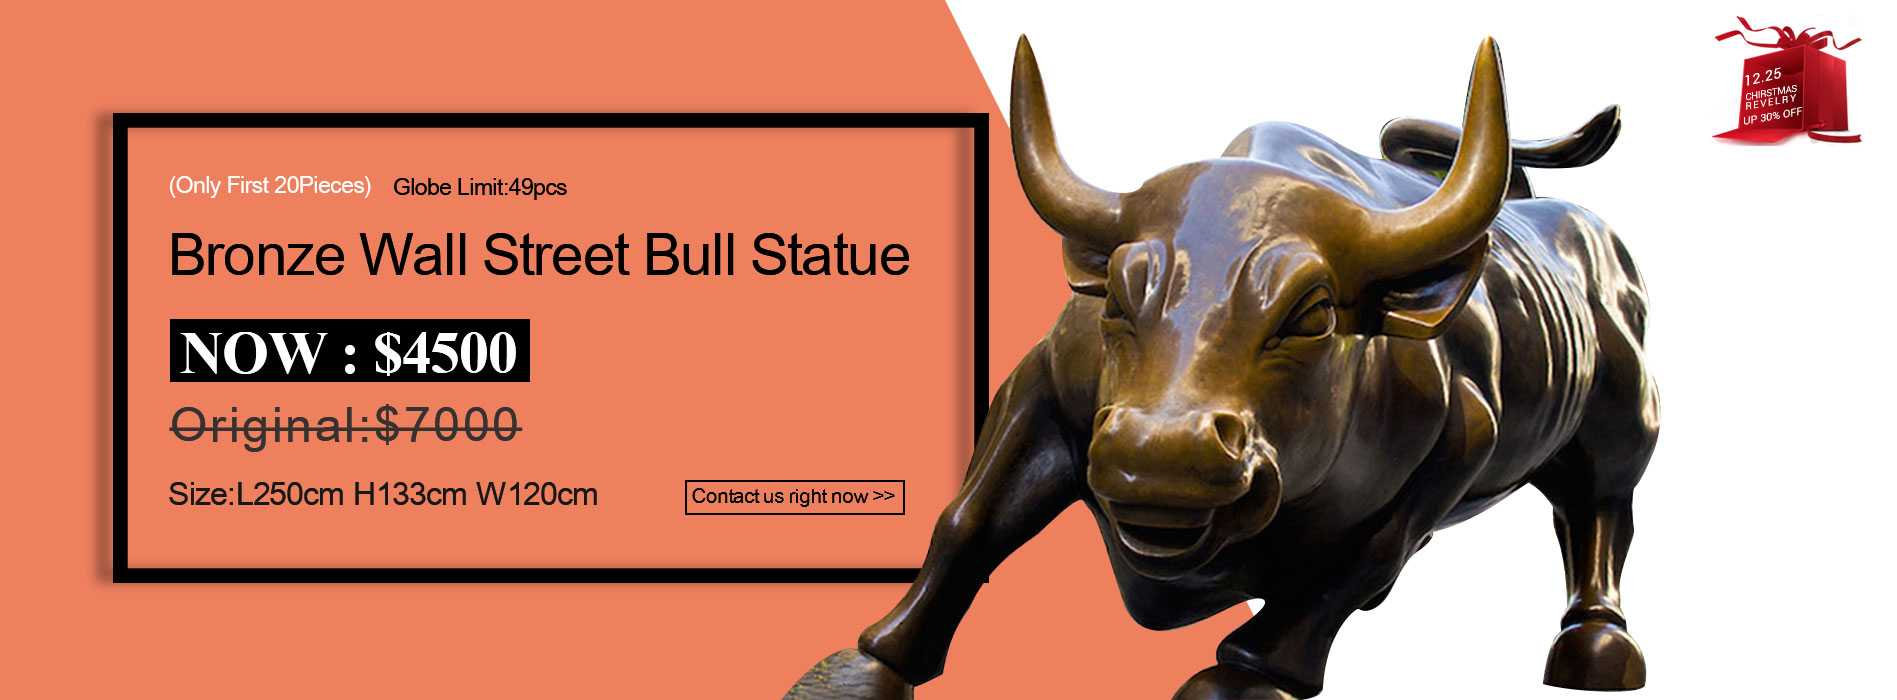 famous bronze wall street bull statue for sale